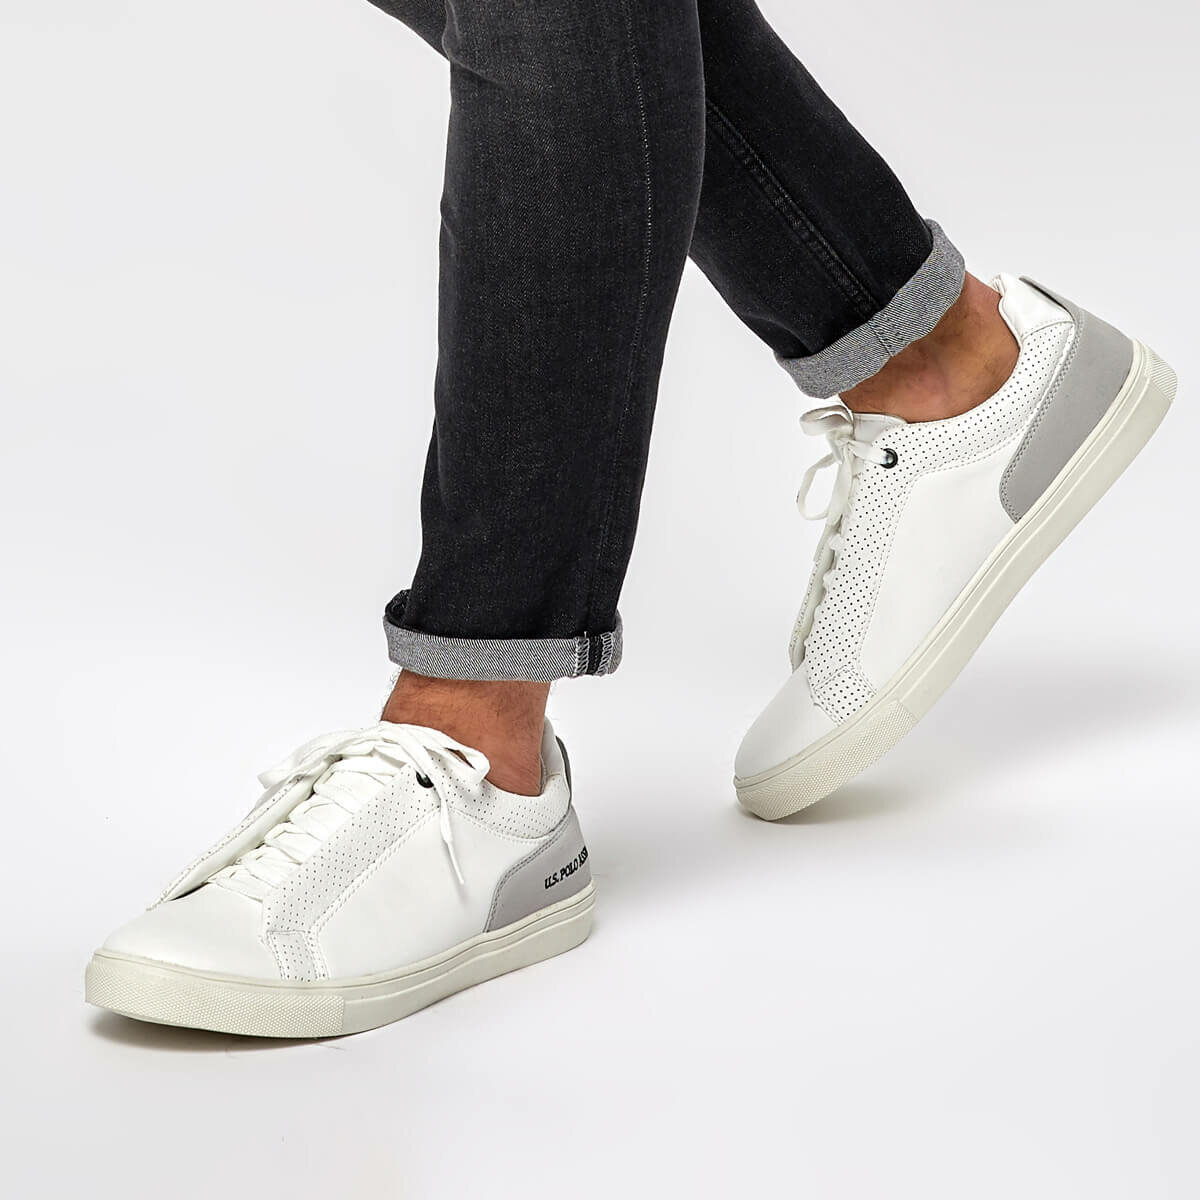 FLO SANTIAGO White Male Shoes U.S. POLO ASSN.